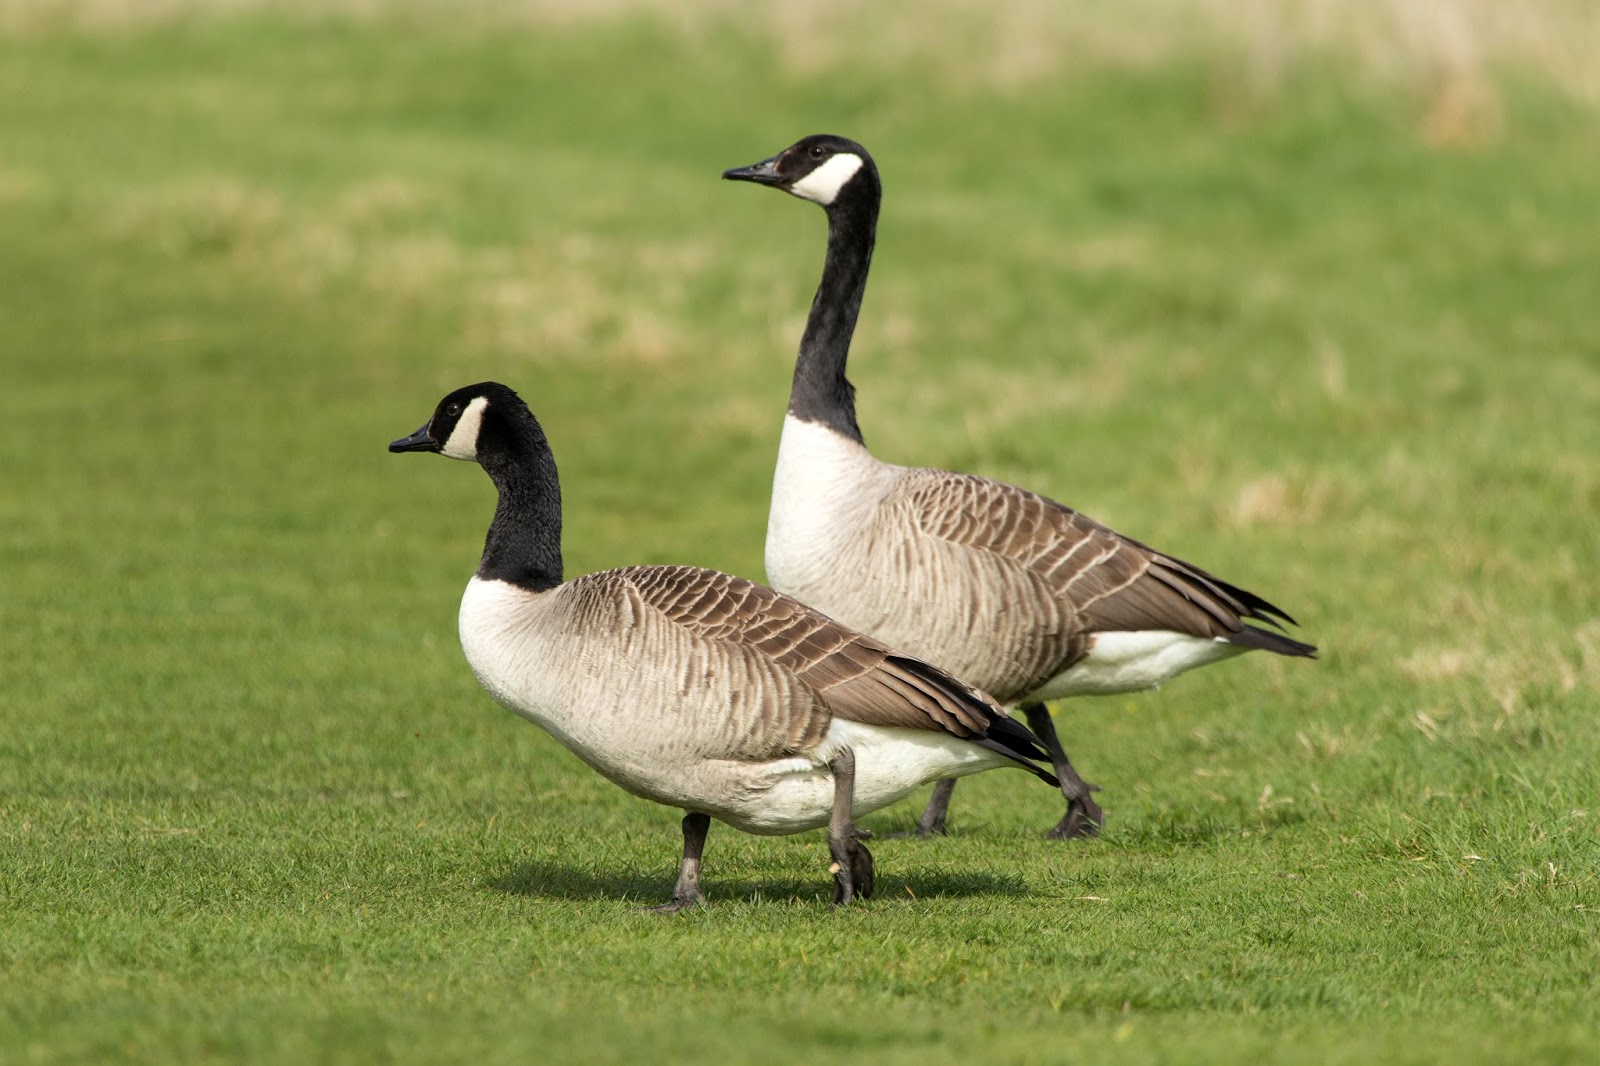 How To Tell A Male Goose From A Female - Shemale Extrem Cock-1793